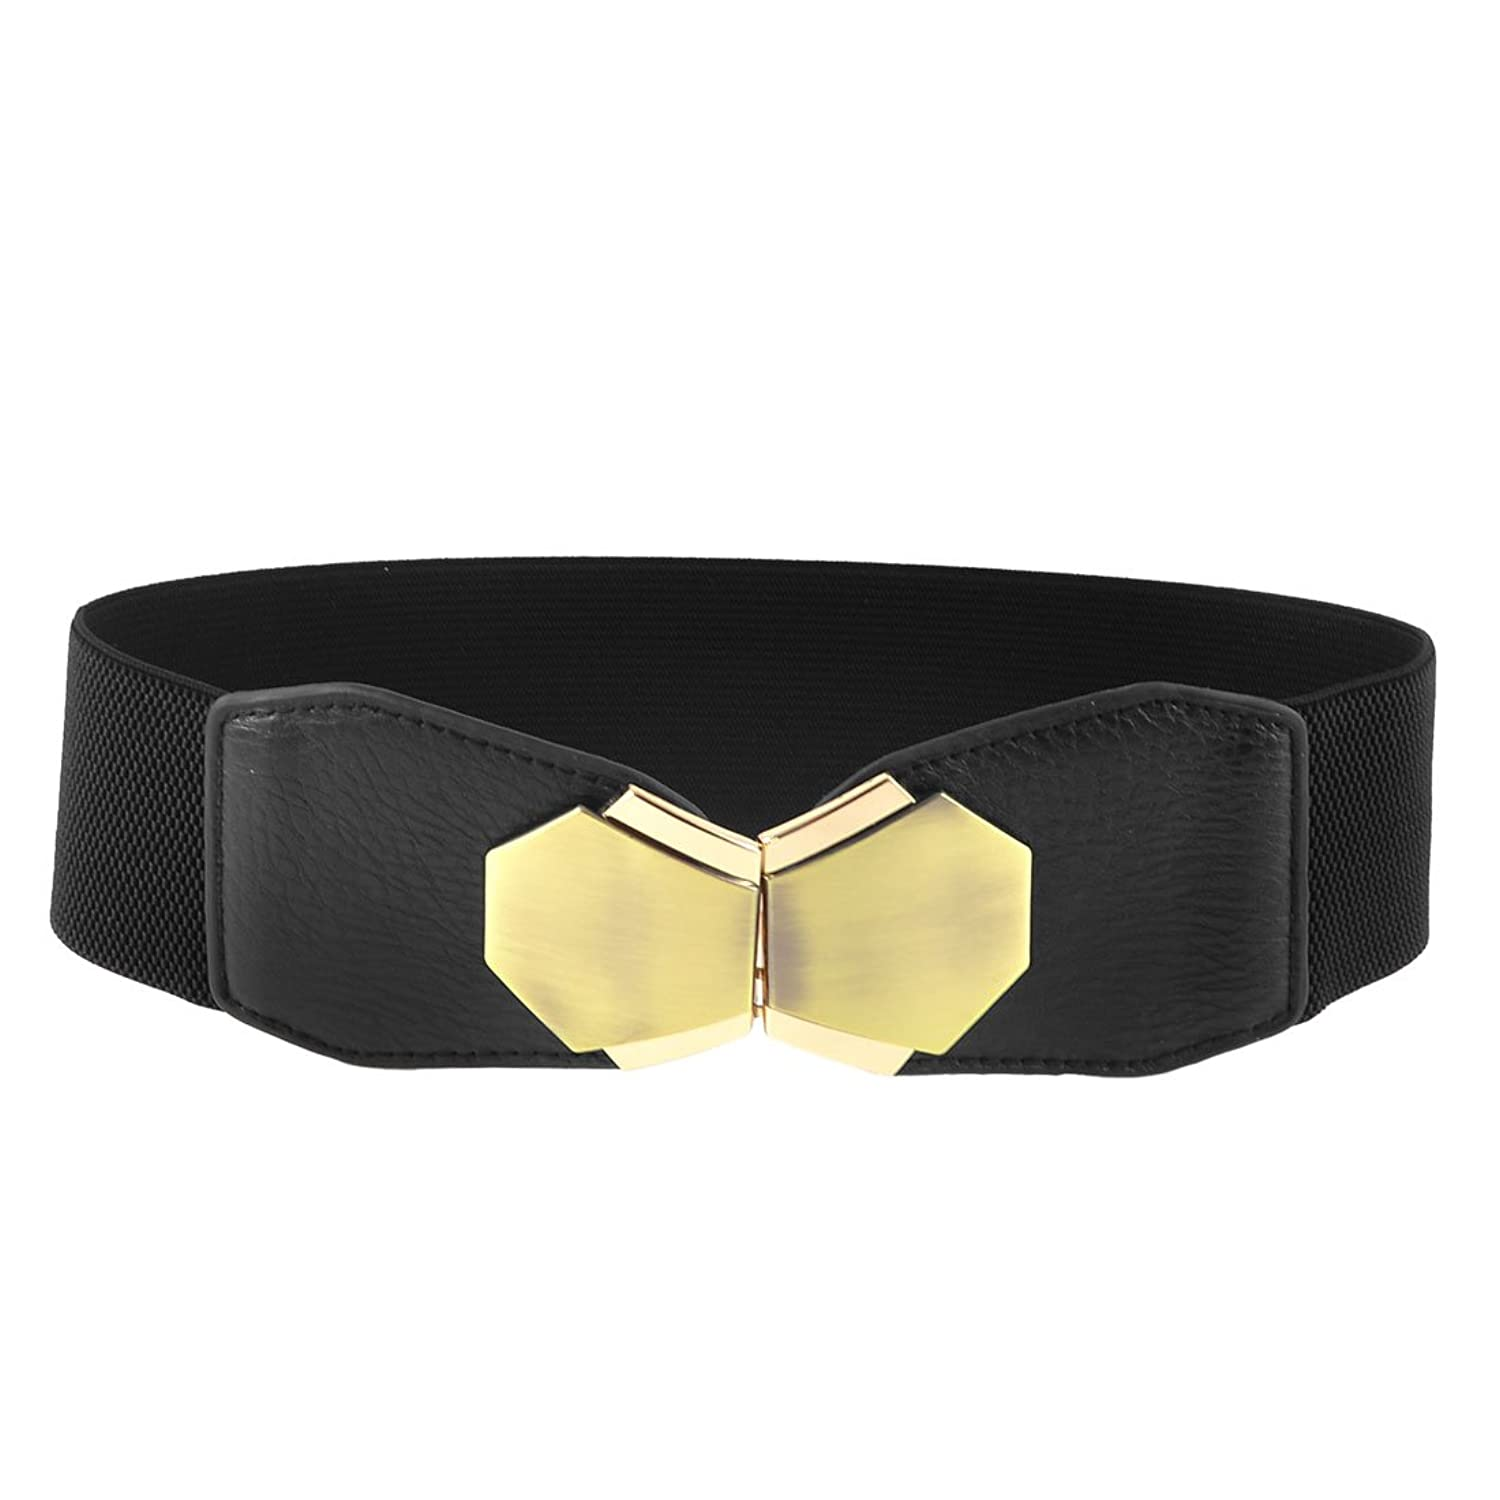 Interlocking Closure Faux Leather Stretchy Waist Belt Cinch 6CM Wide for Woman